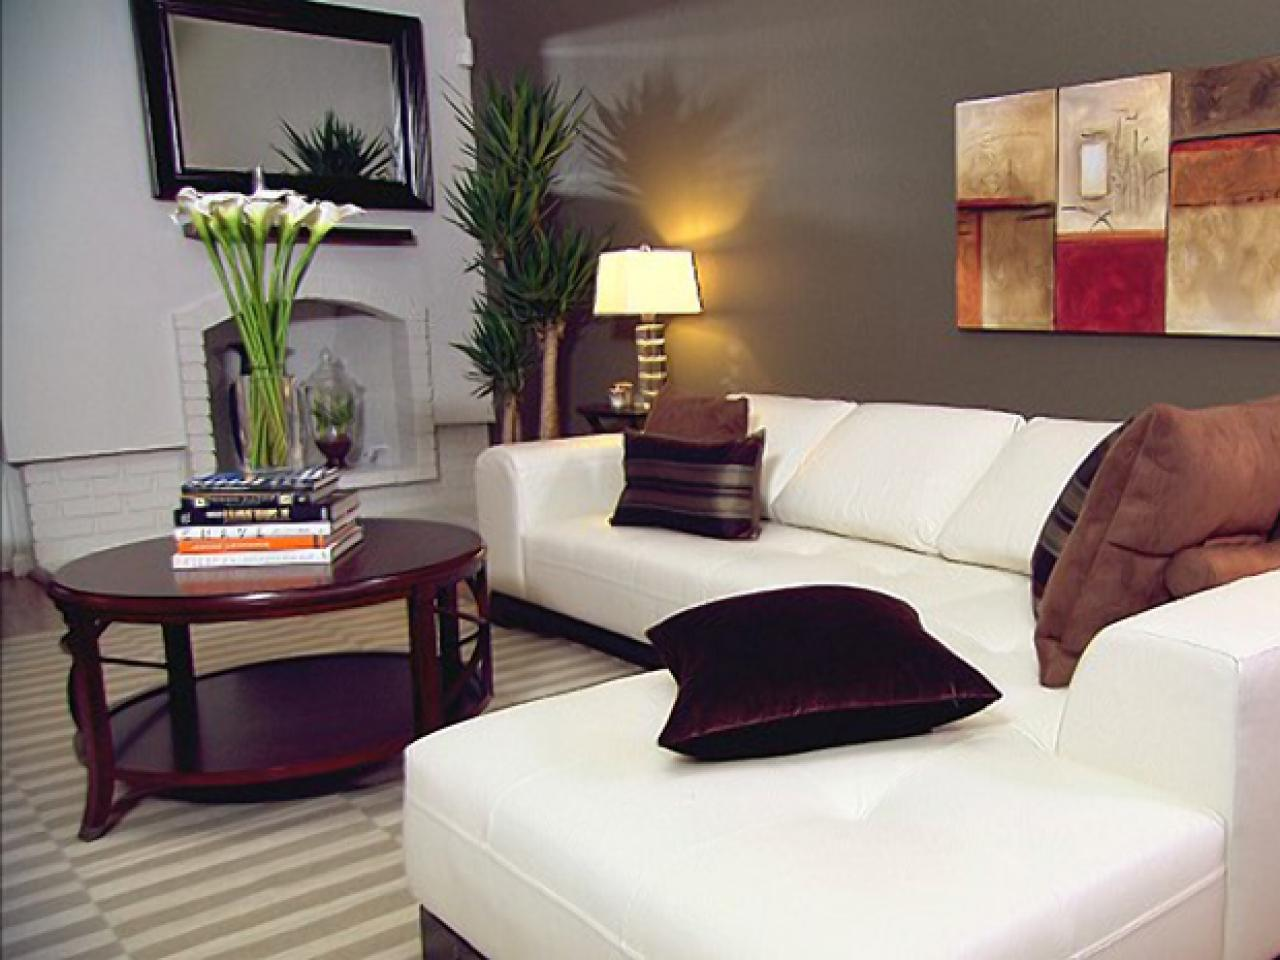 asian living room contemporary classic living room hfys livingroomafterjpgrendhgtvcom contemporary classic living room